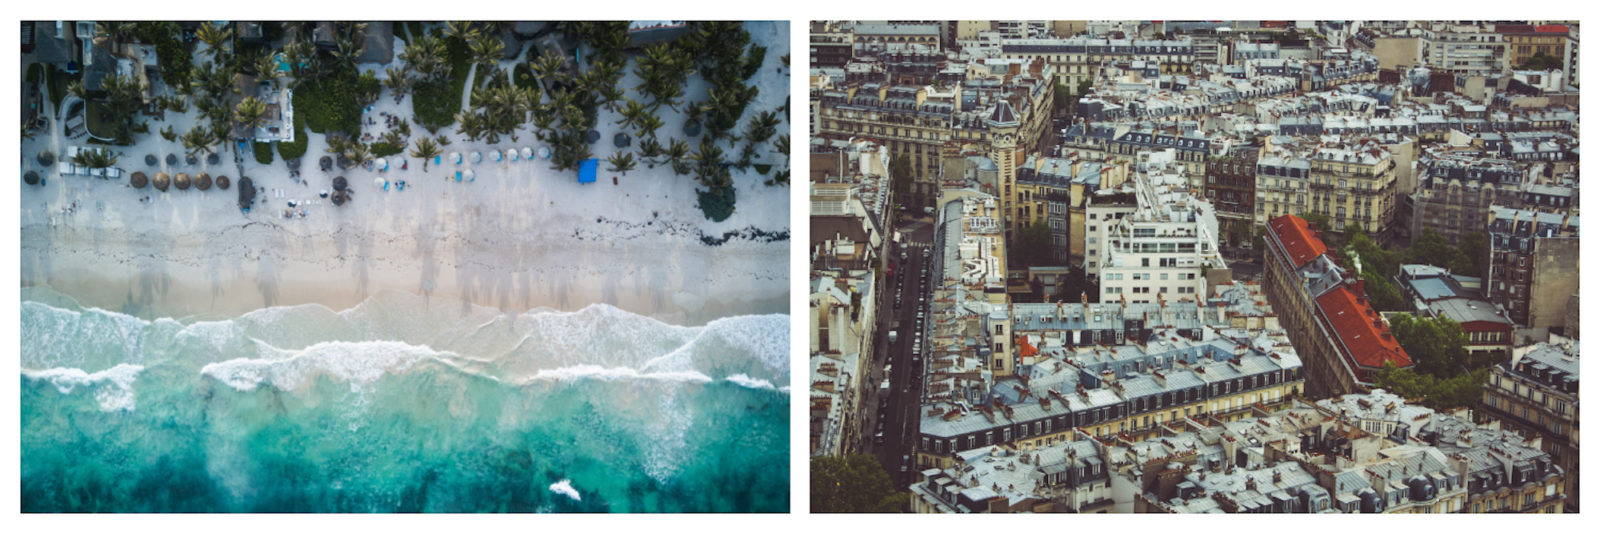 Aerial views of Paris (right) and of a pretty tropical deserted beach (left).